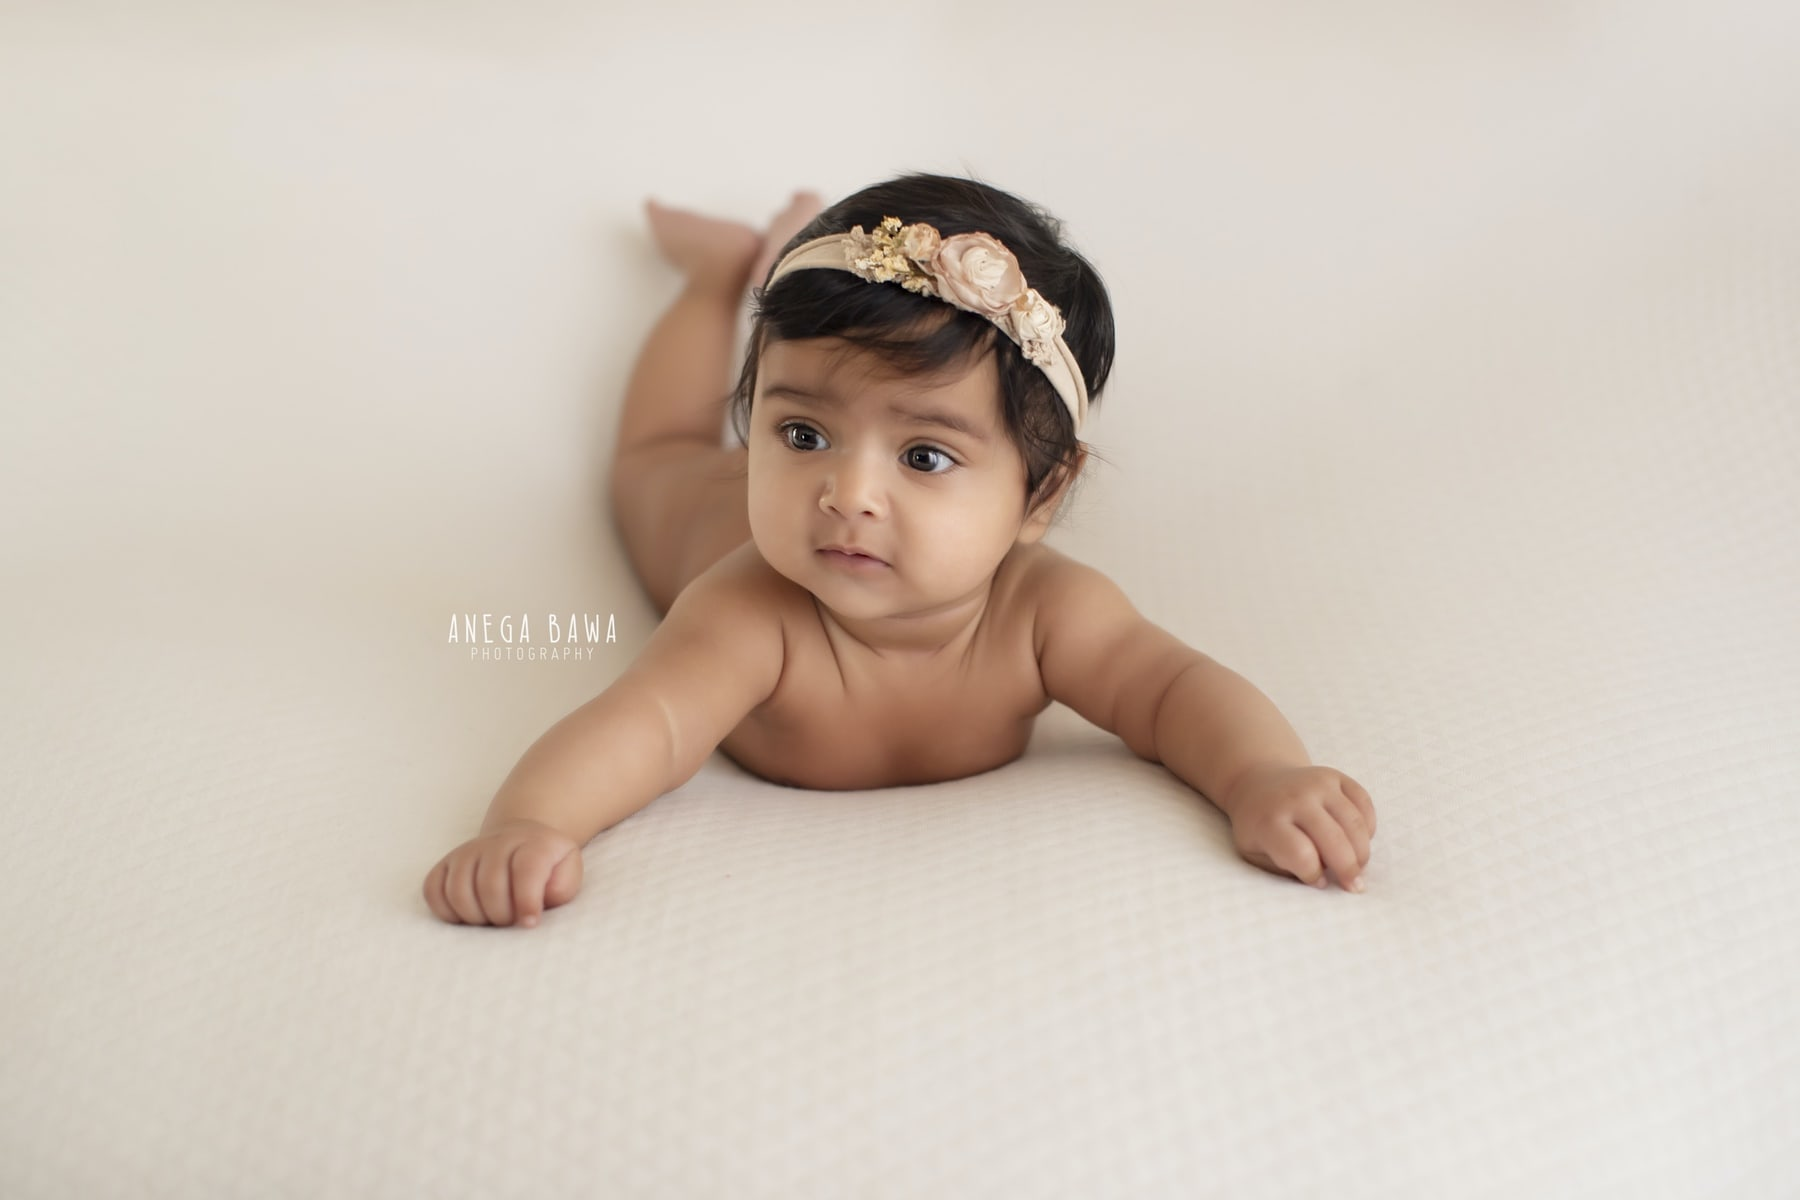 white baby photography delhi 5 months baby girl photoshoot gurgaon anega bawa